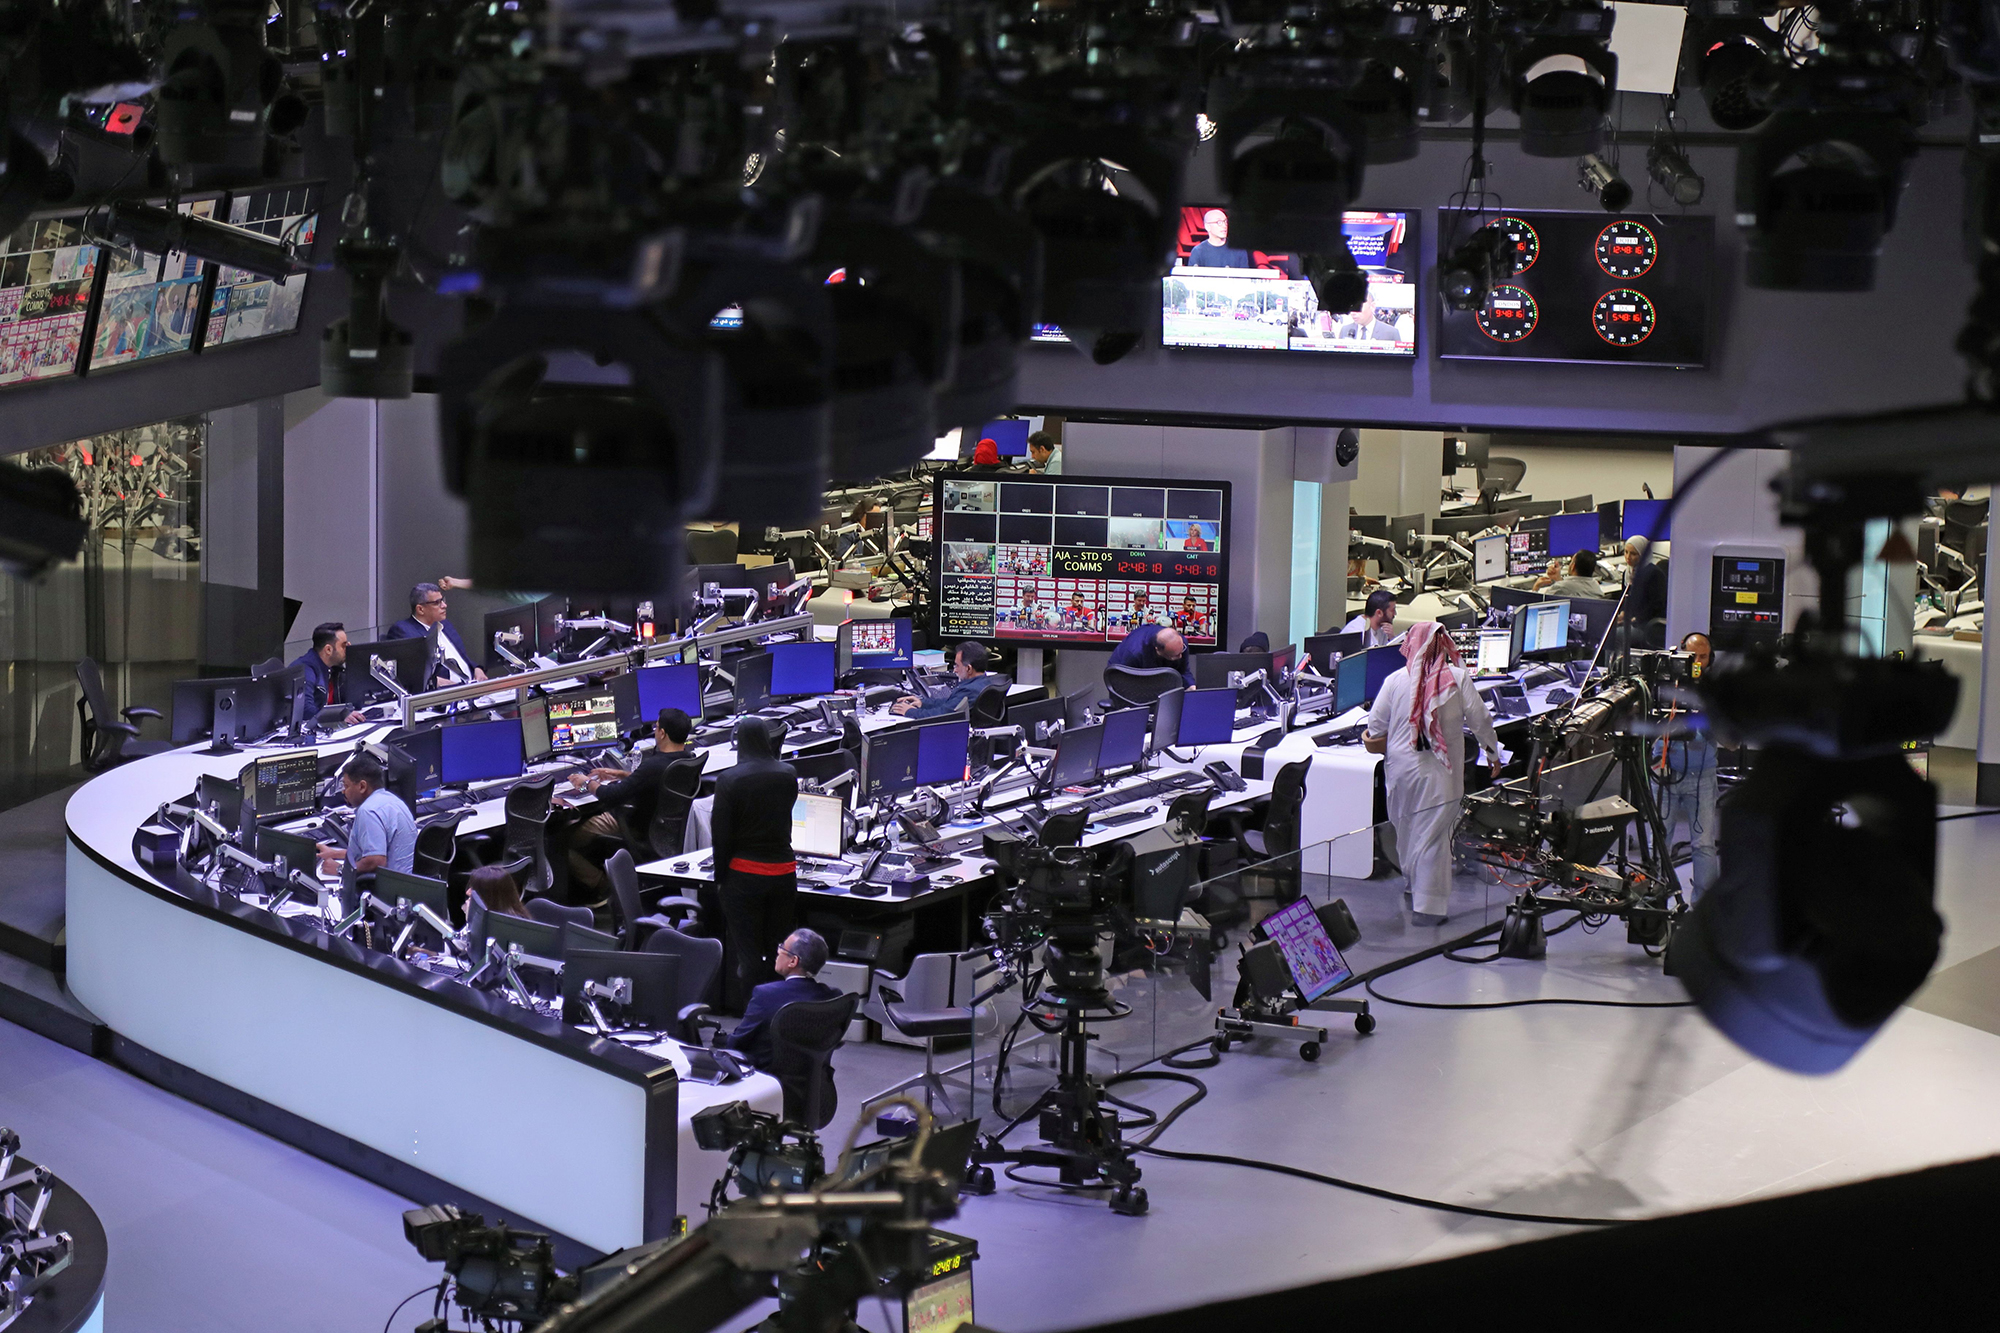 DOJ orders Al Jazeera platform to register as foreign agent